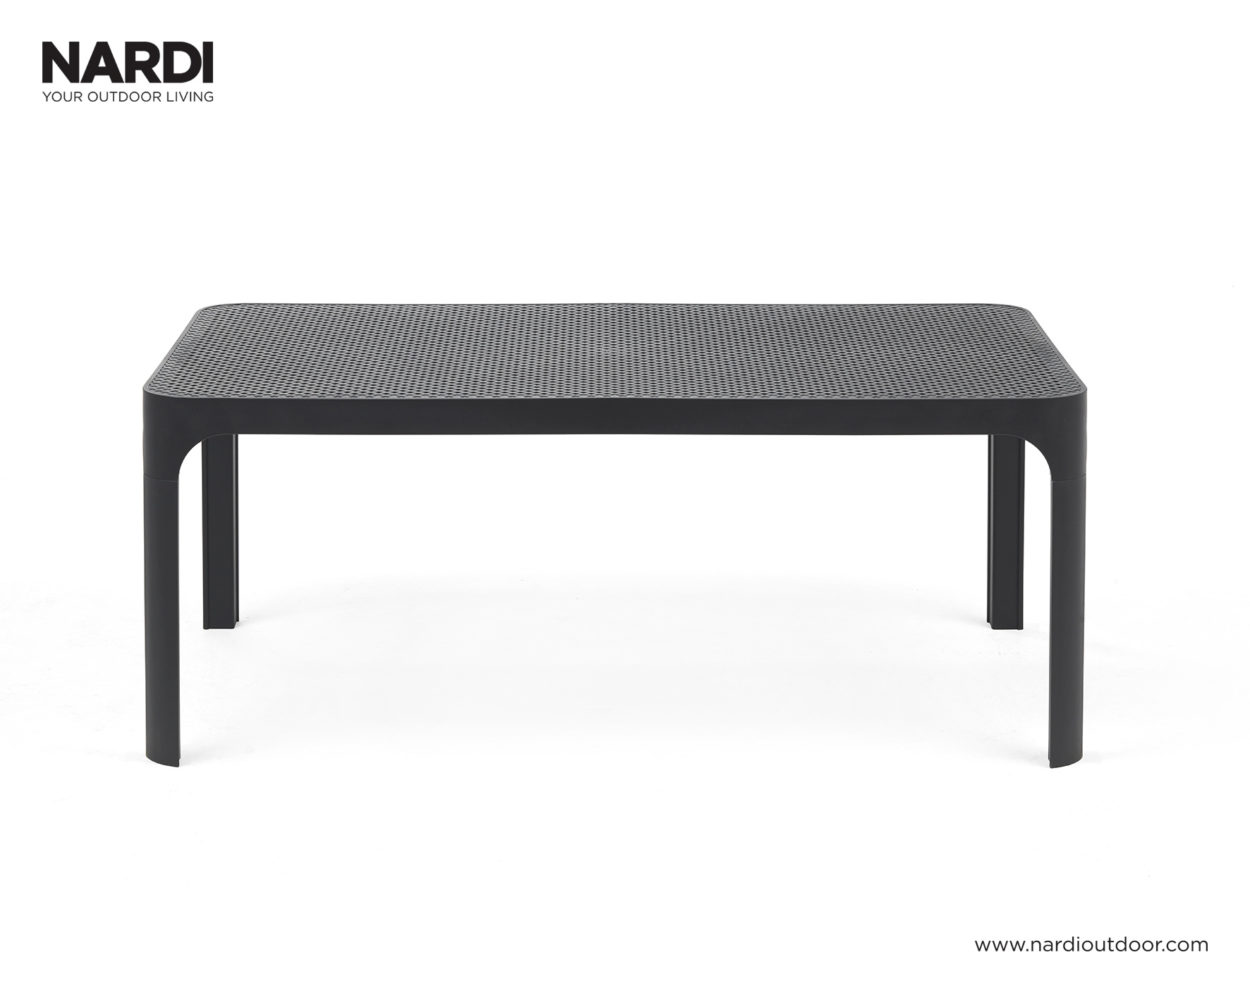 Nardi Net Table 100x60 Antraciet